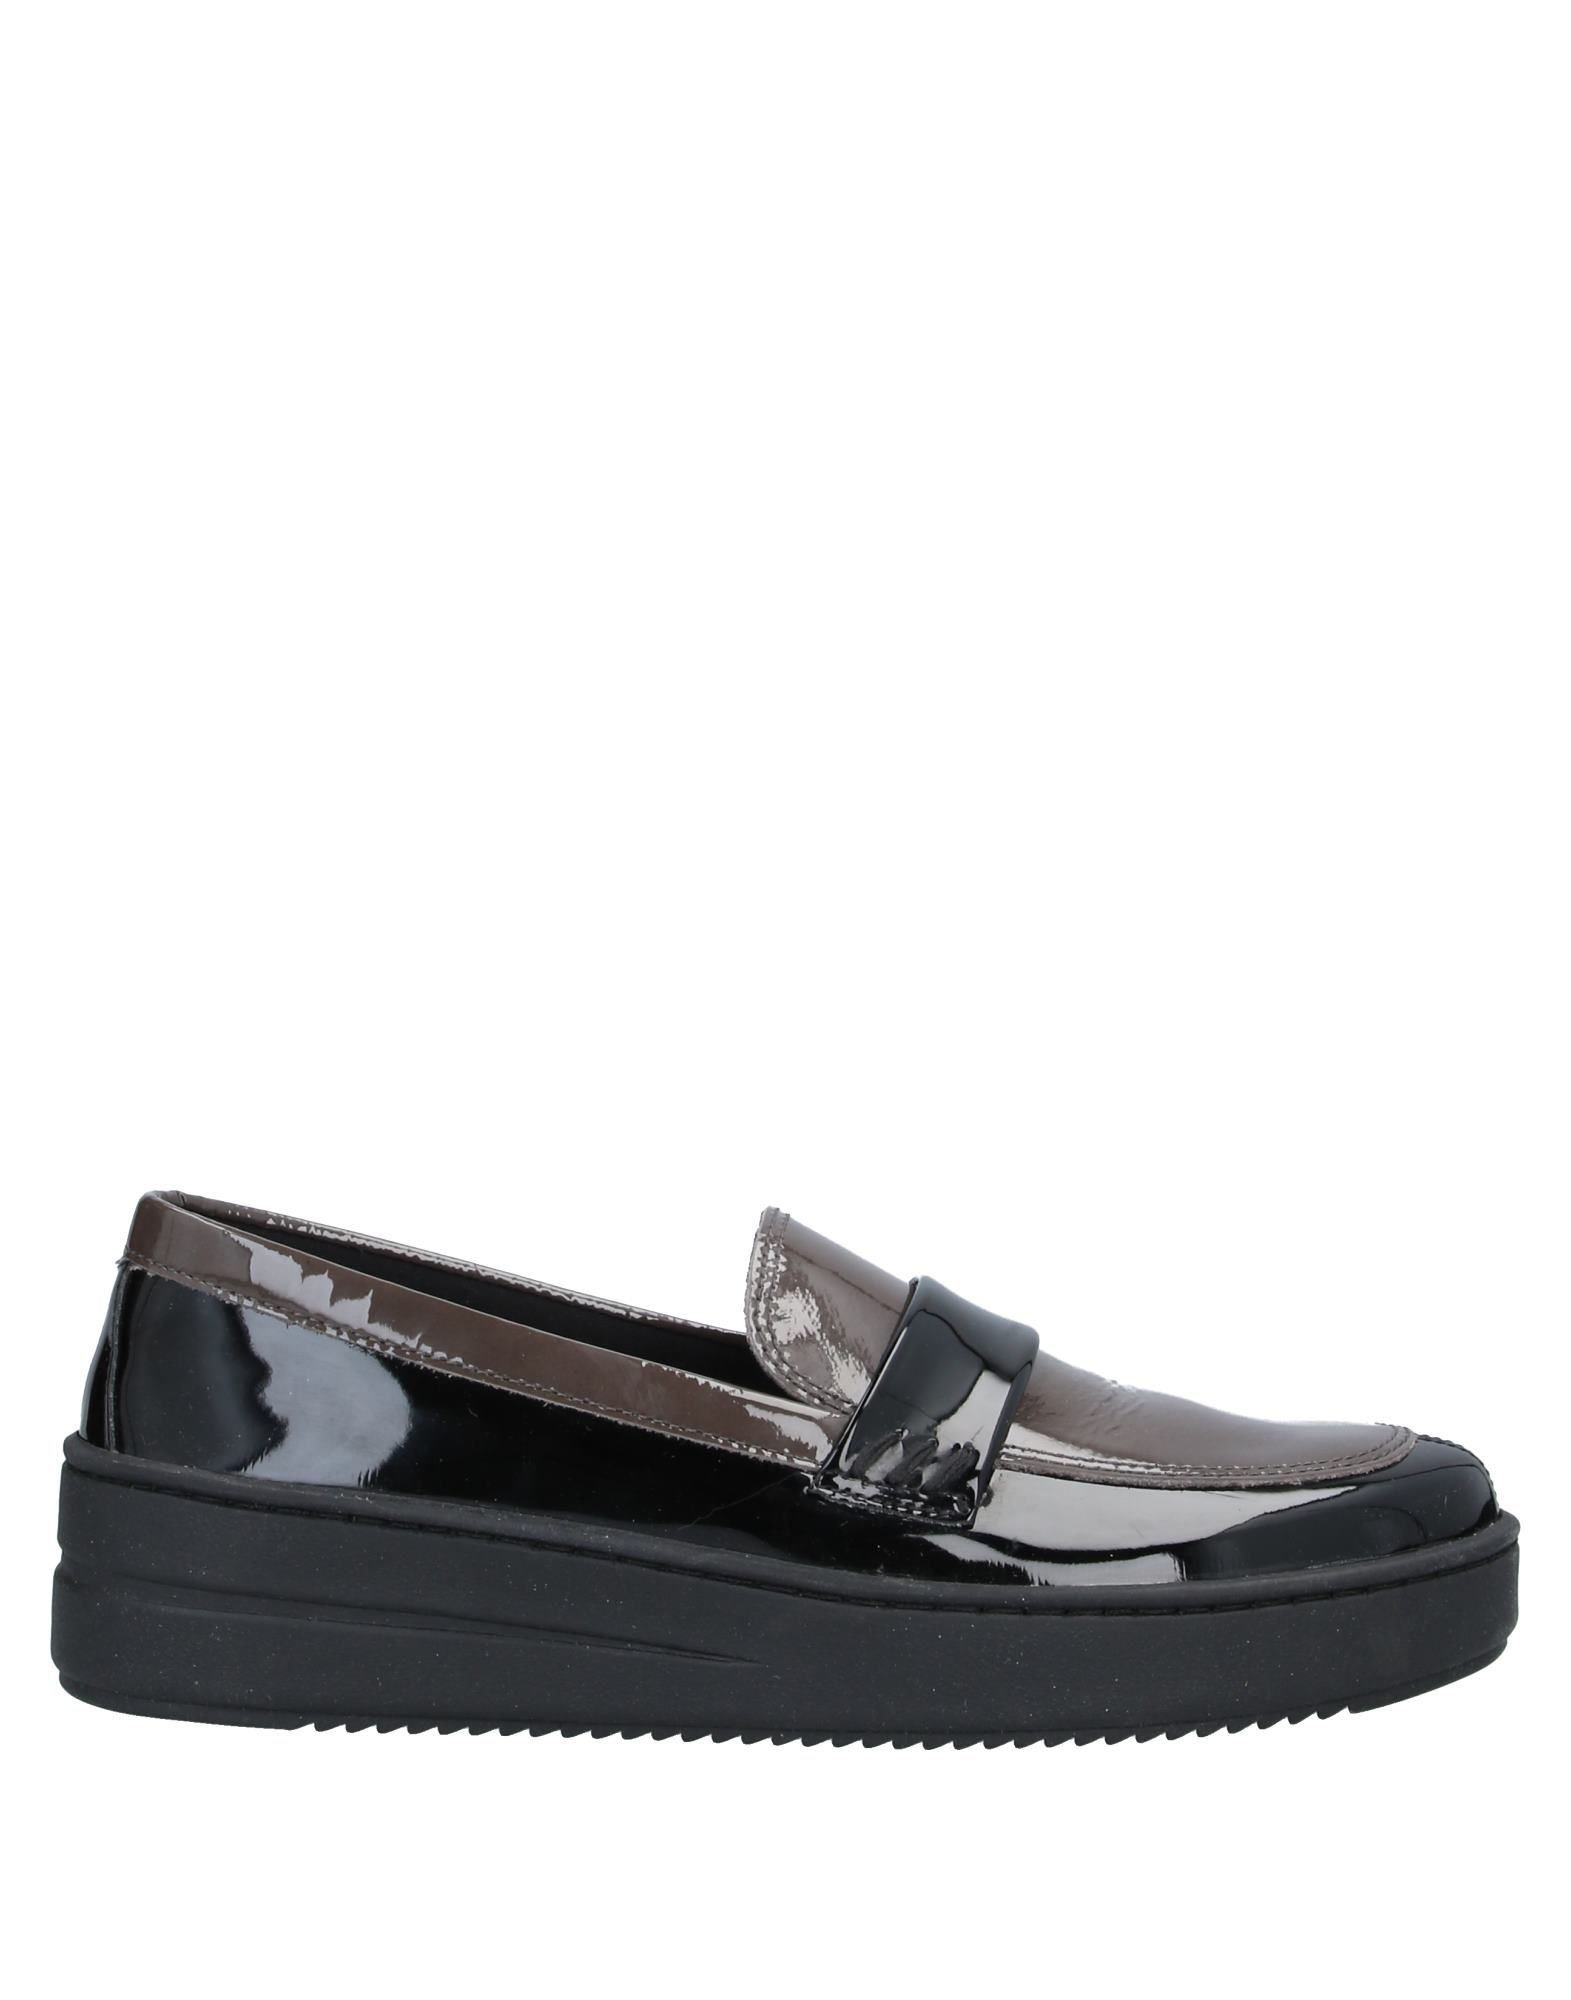 THE FLEXX Loafers. leather, varnished effect, no appliqués, two-tone, round toeline, wedge heel, rubber wedge, fabric inner, rubber cleated sole, contains non-textile parts of animal origin. Soft Leather, Polyurethane